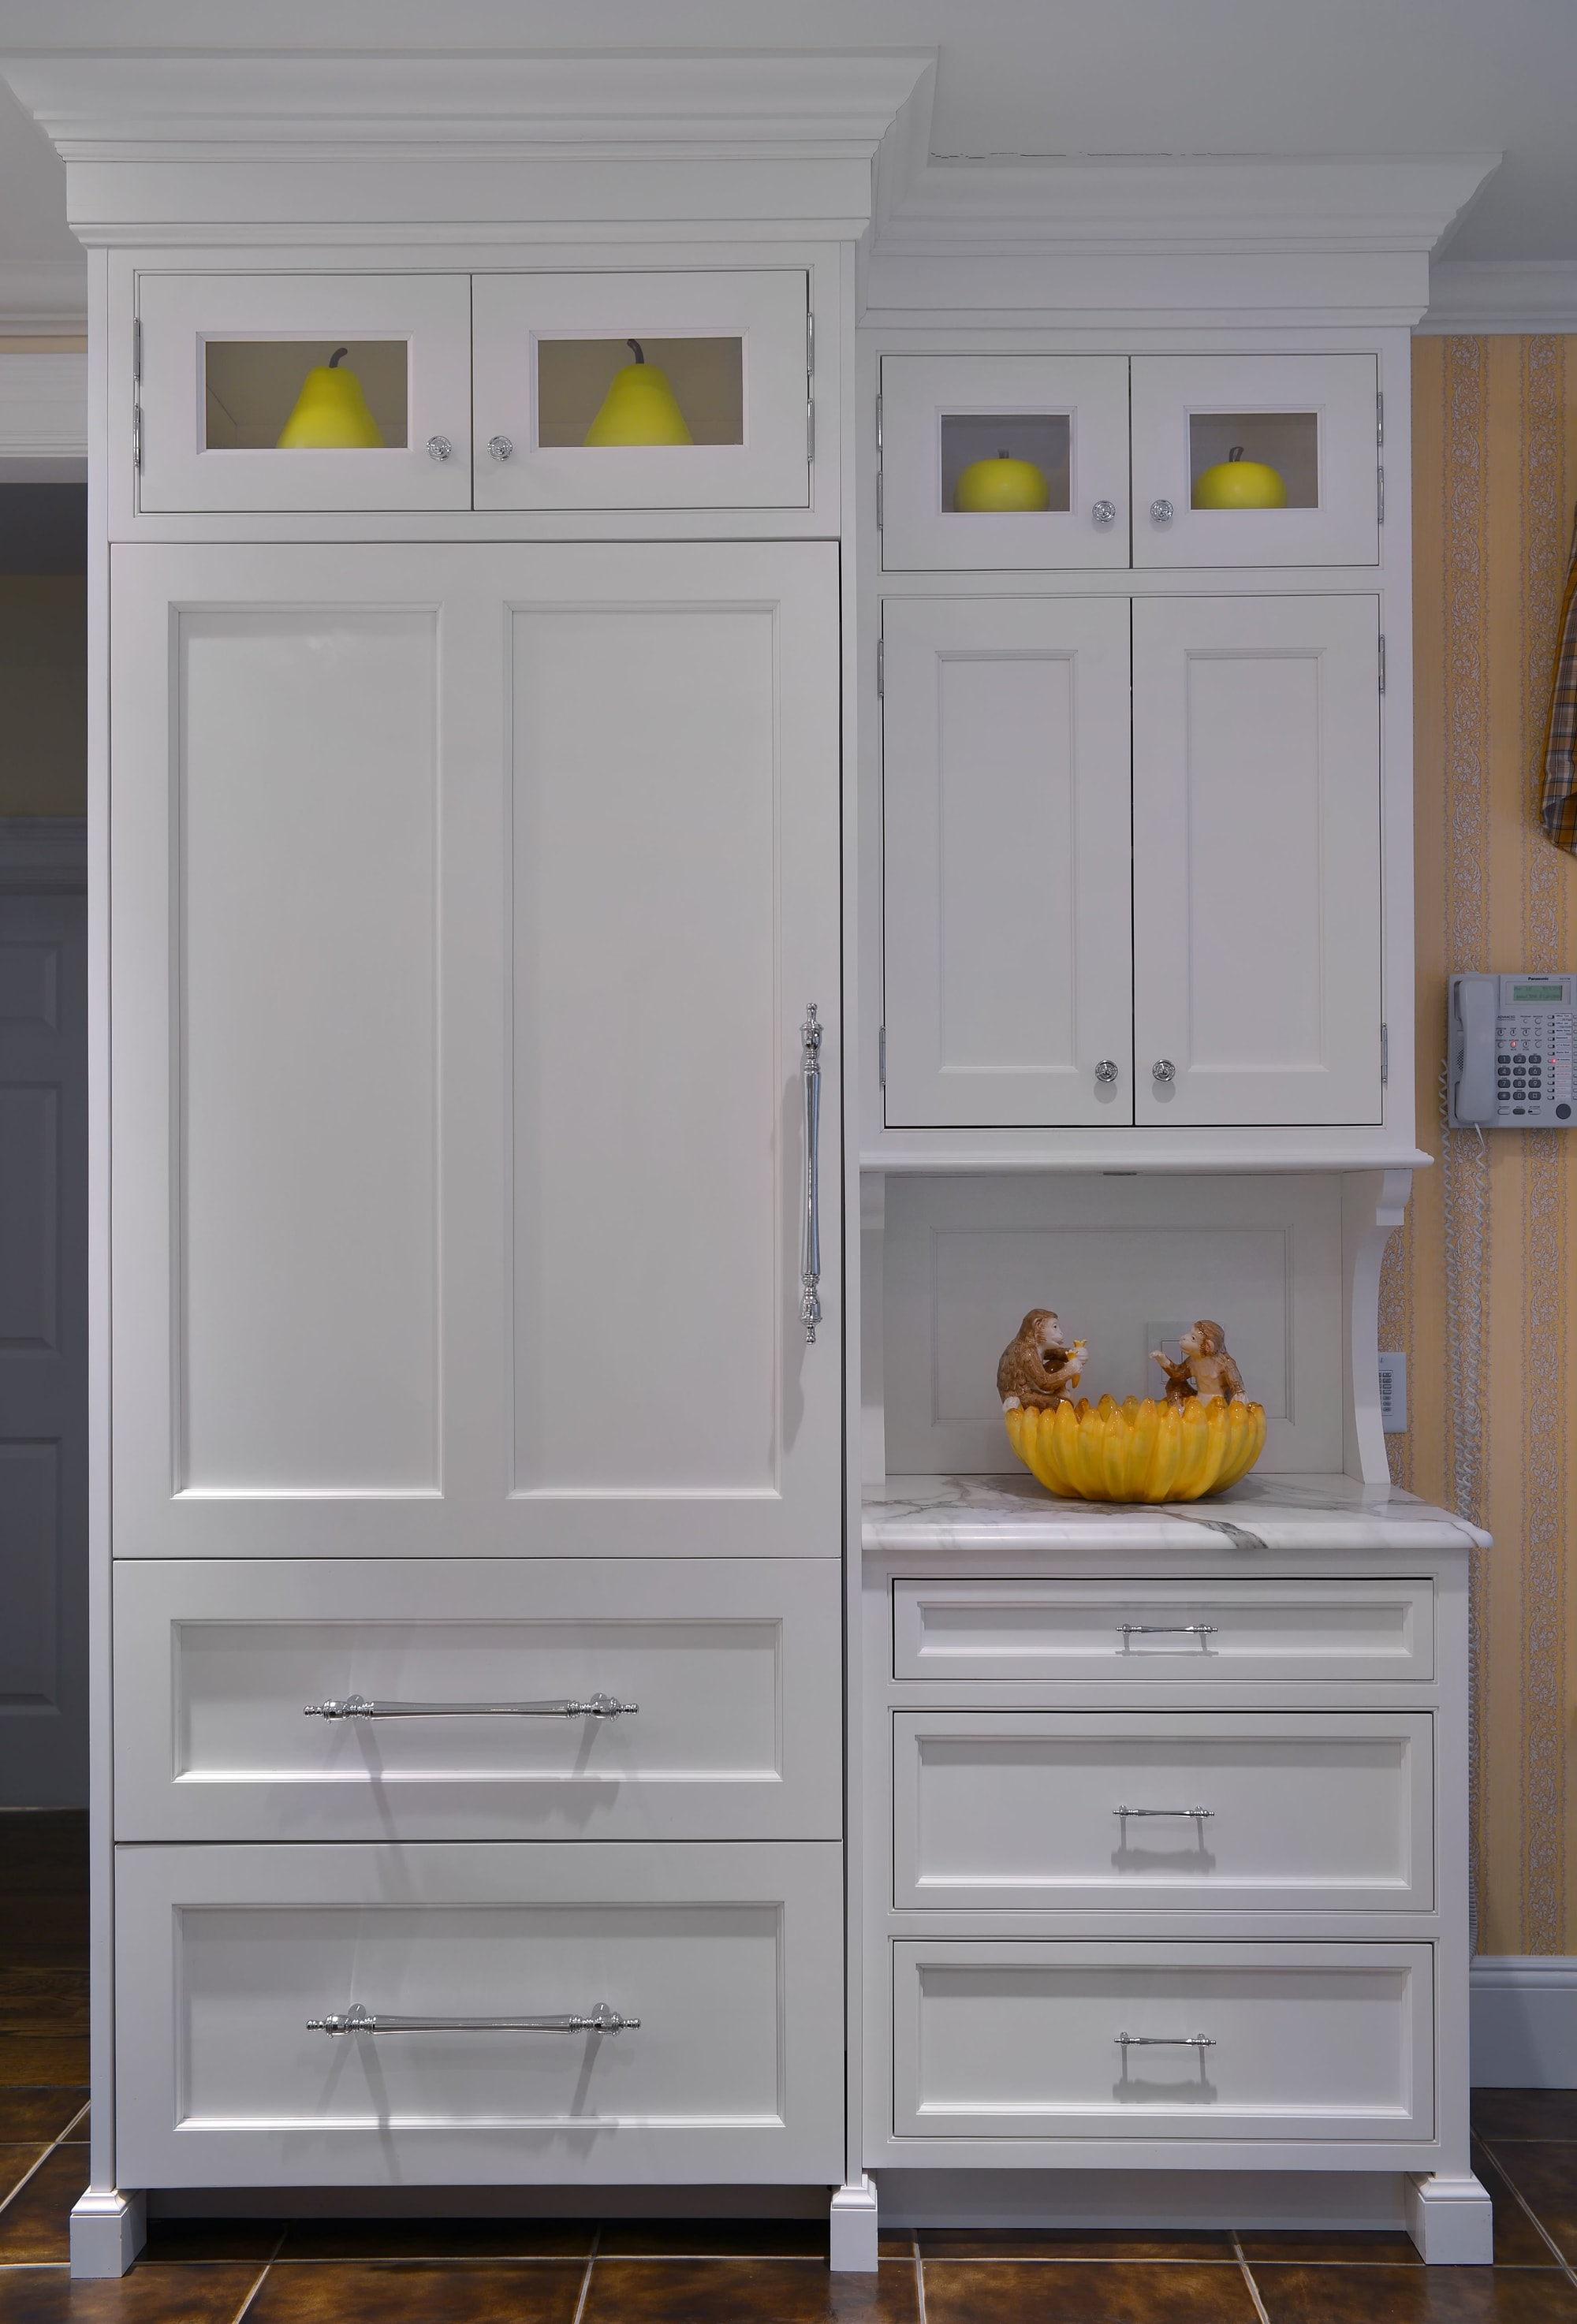 Transitional style kitchen with large cabinet with pull out drawer